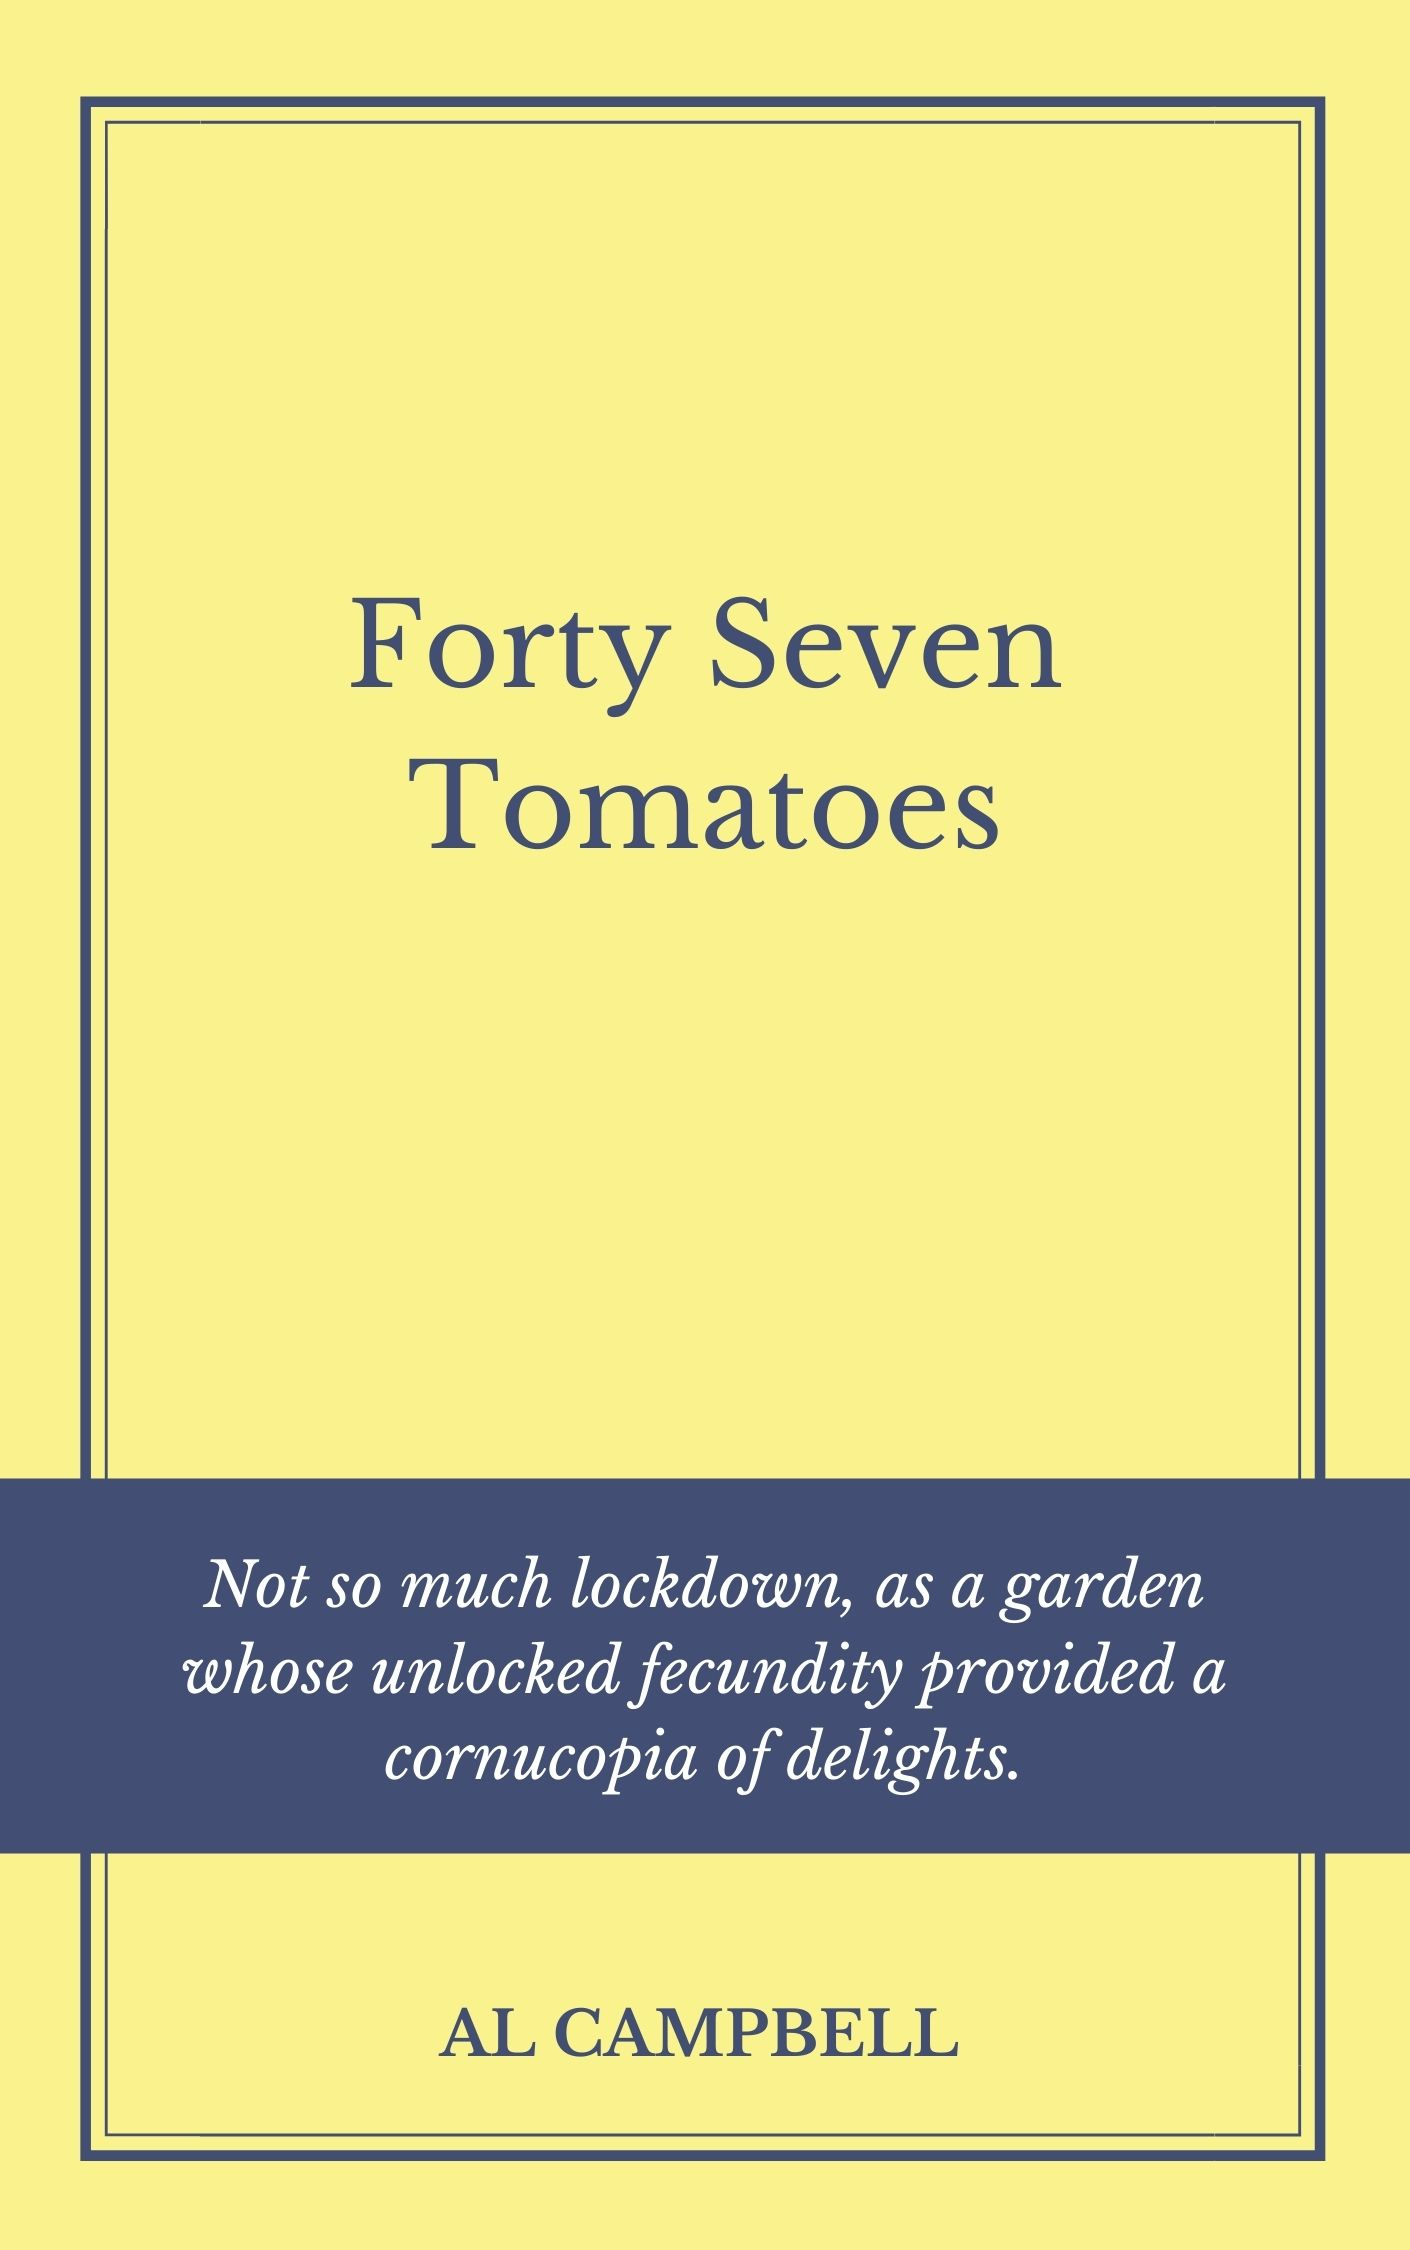 47 Tomatoes - By Al Campbell